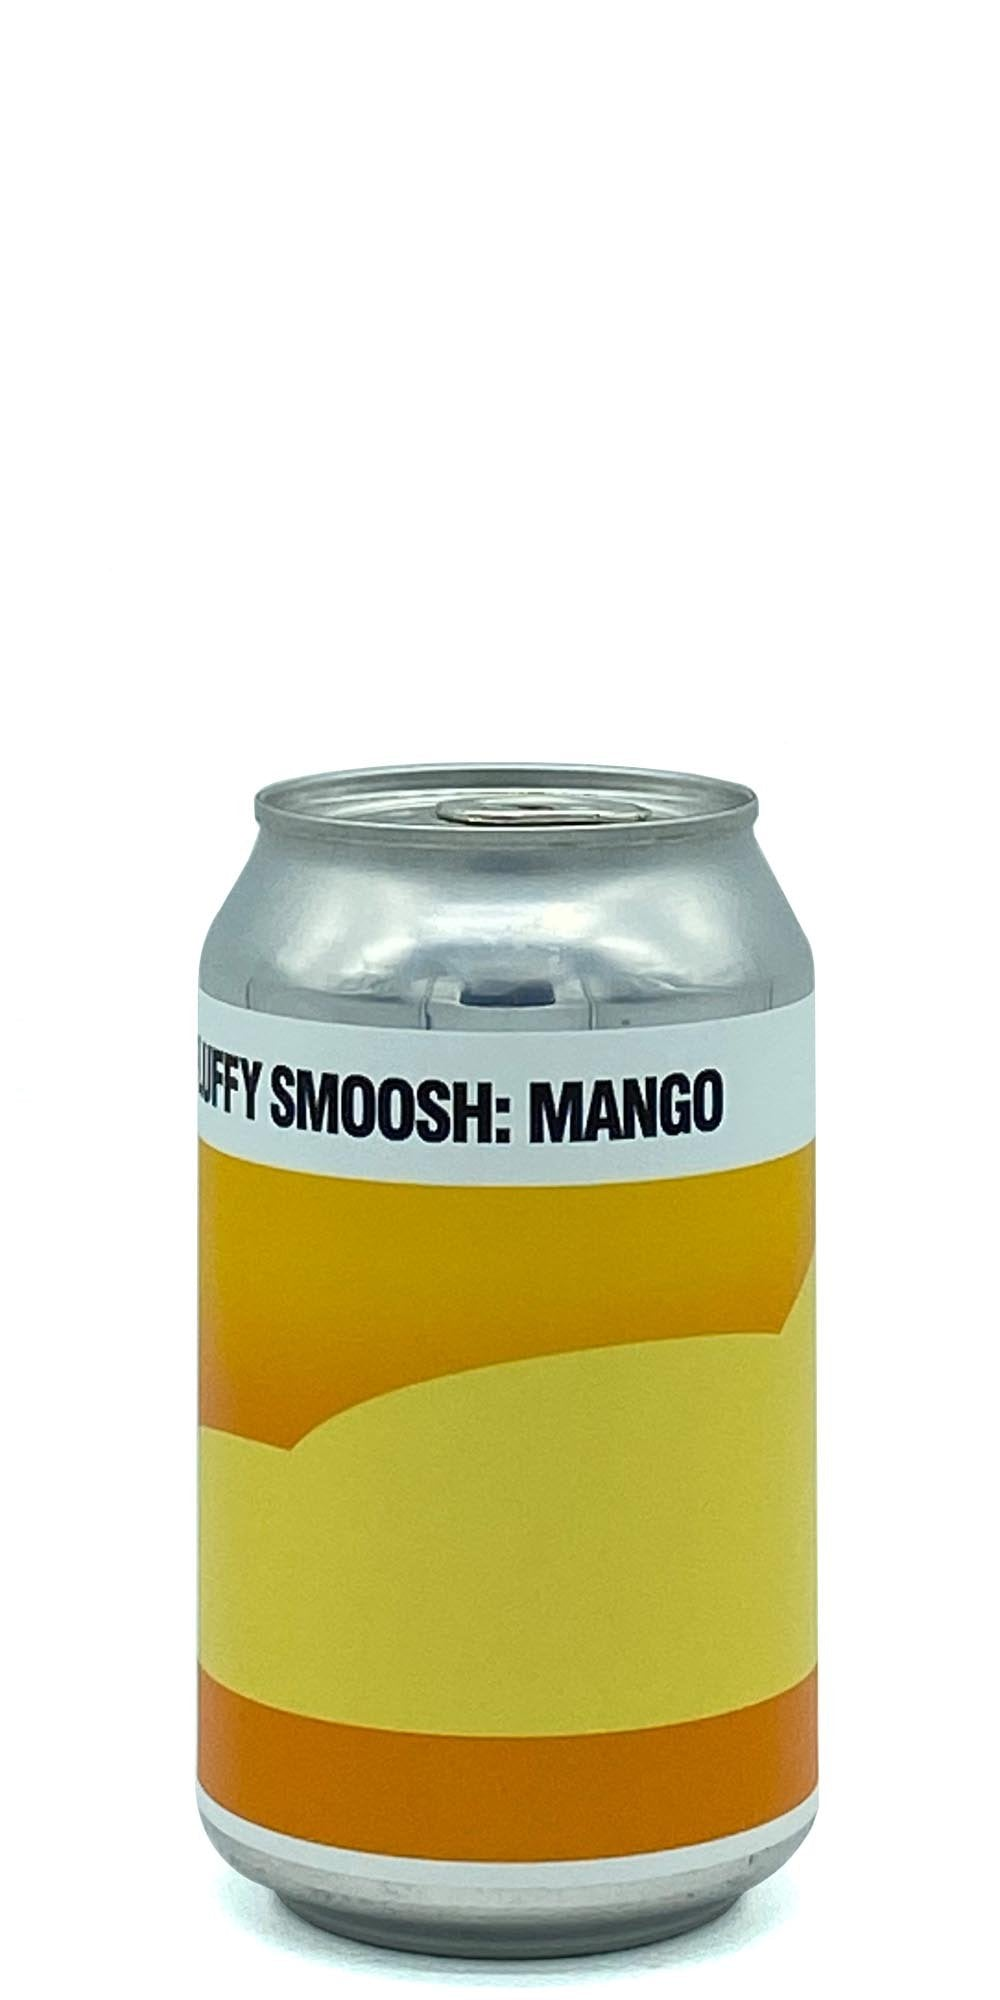 Black Cat - Fluffy Smoosh: Mango - Drikbeer - Order Craft Beer Online